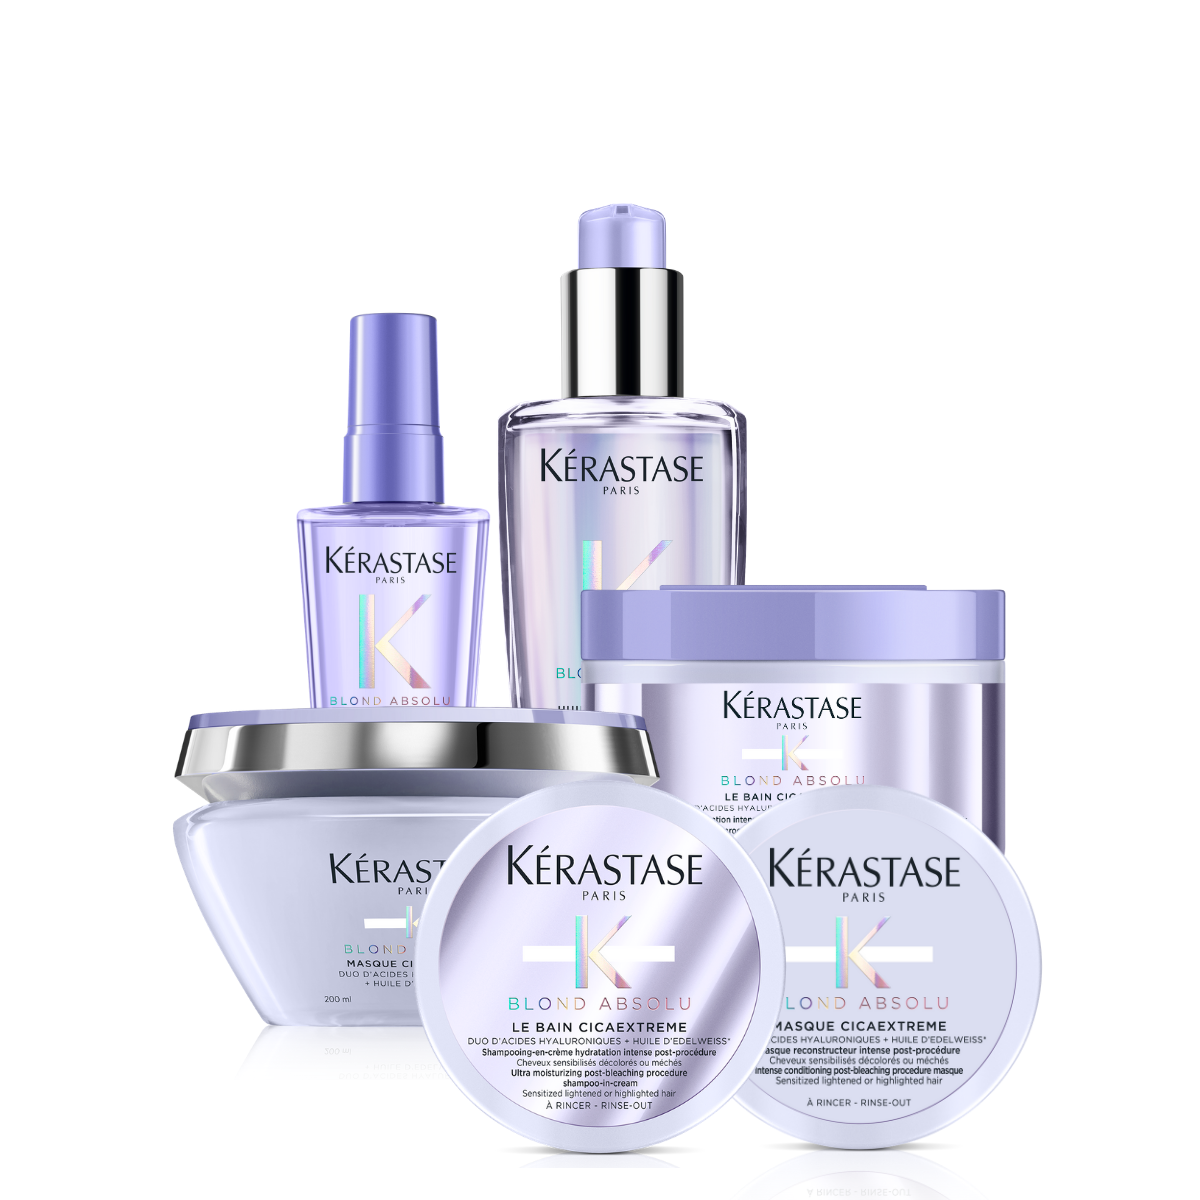 Kérastase Blond Absolu Cicaextreme Strength and Hydration Solution Bundle